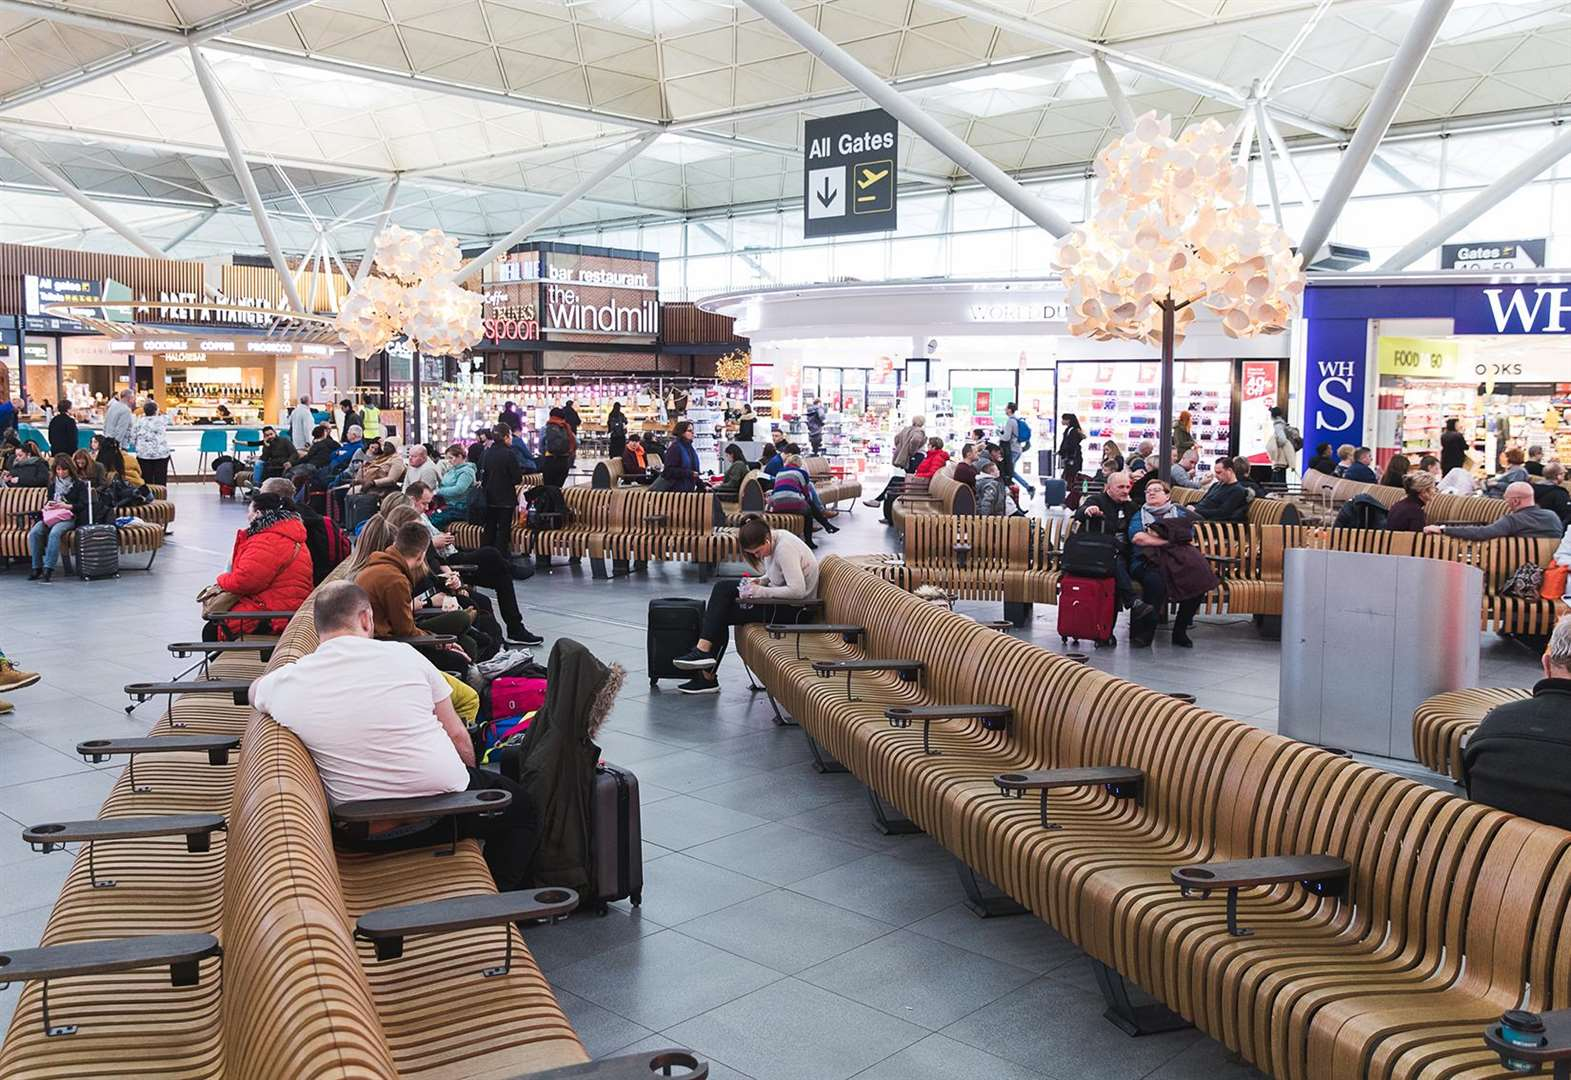 Stansted Airport adds 550 seats to accommodate growing passenger numbers